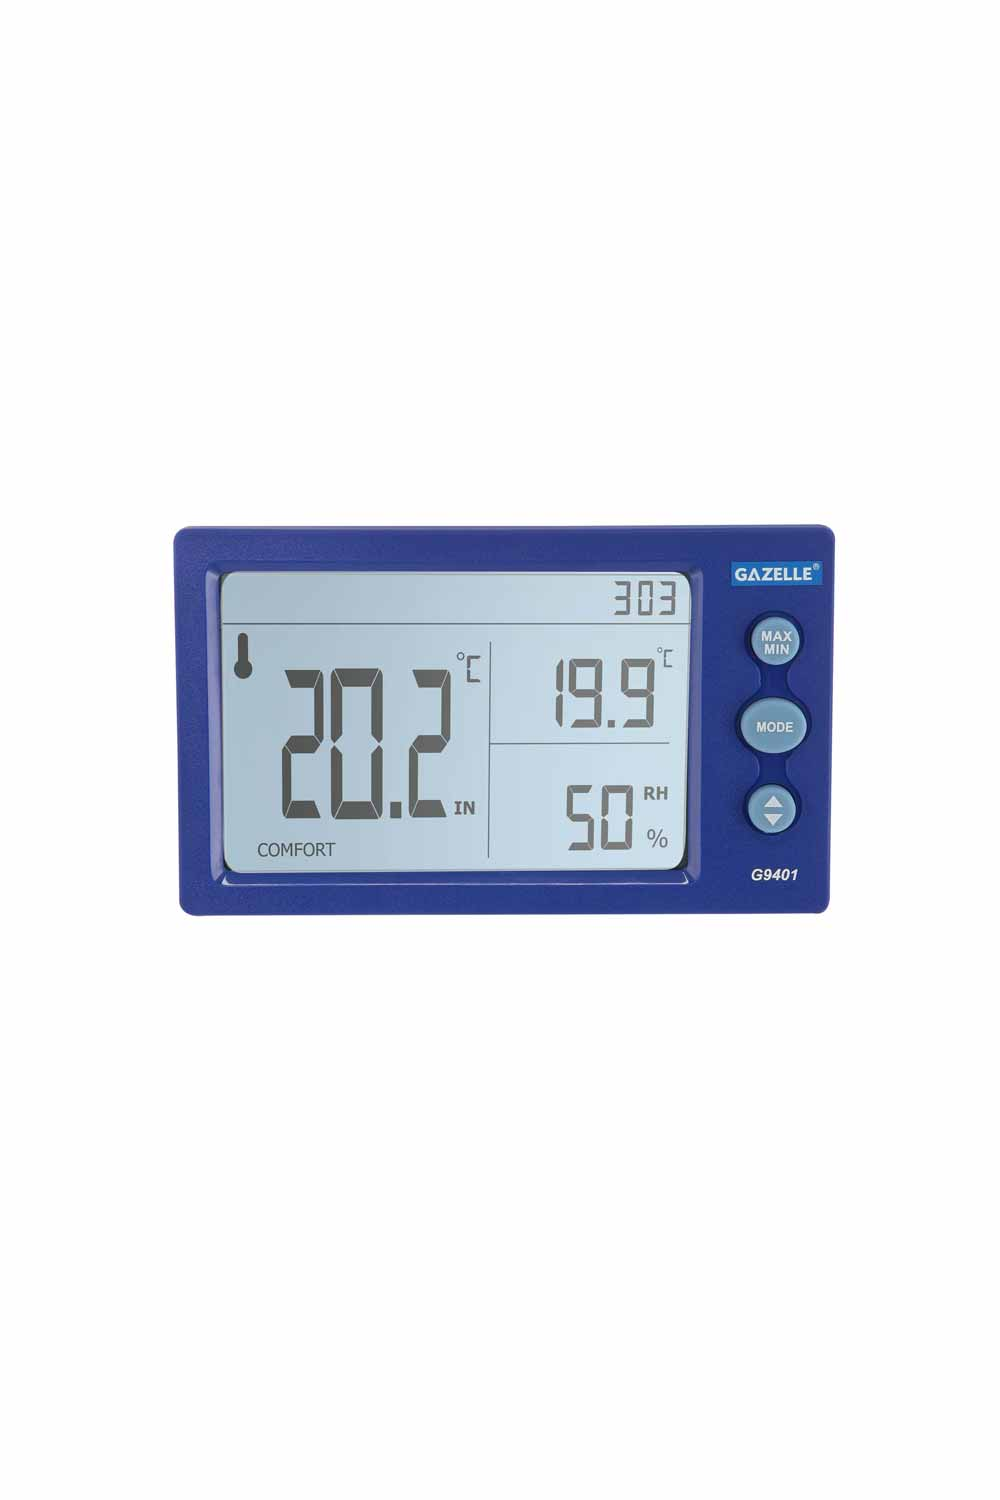 GAZELLE G9401 - Big Digit Temperature Humidity Meter